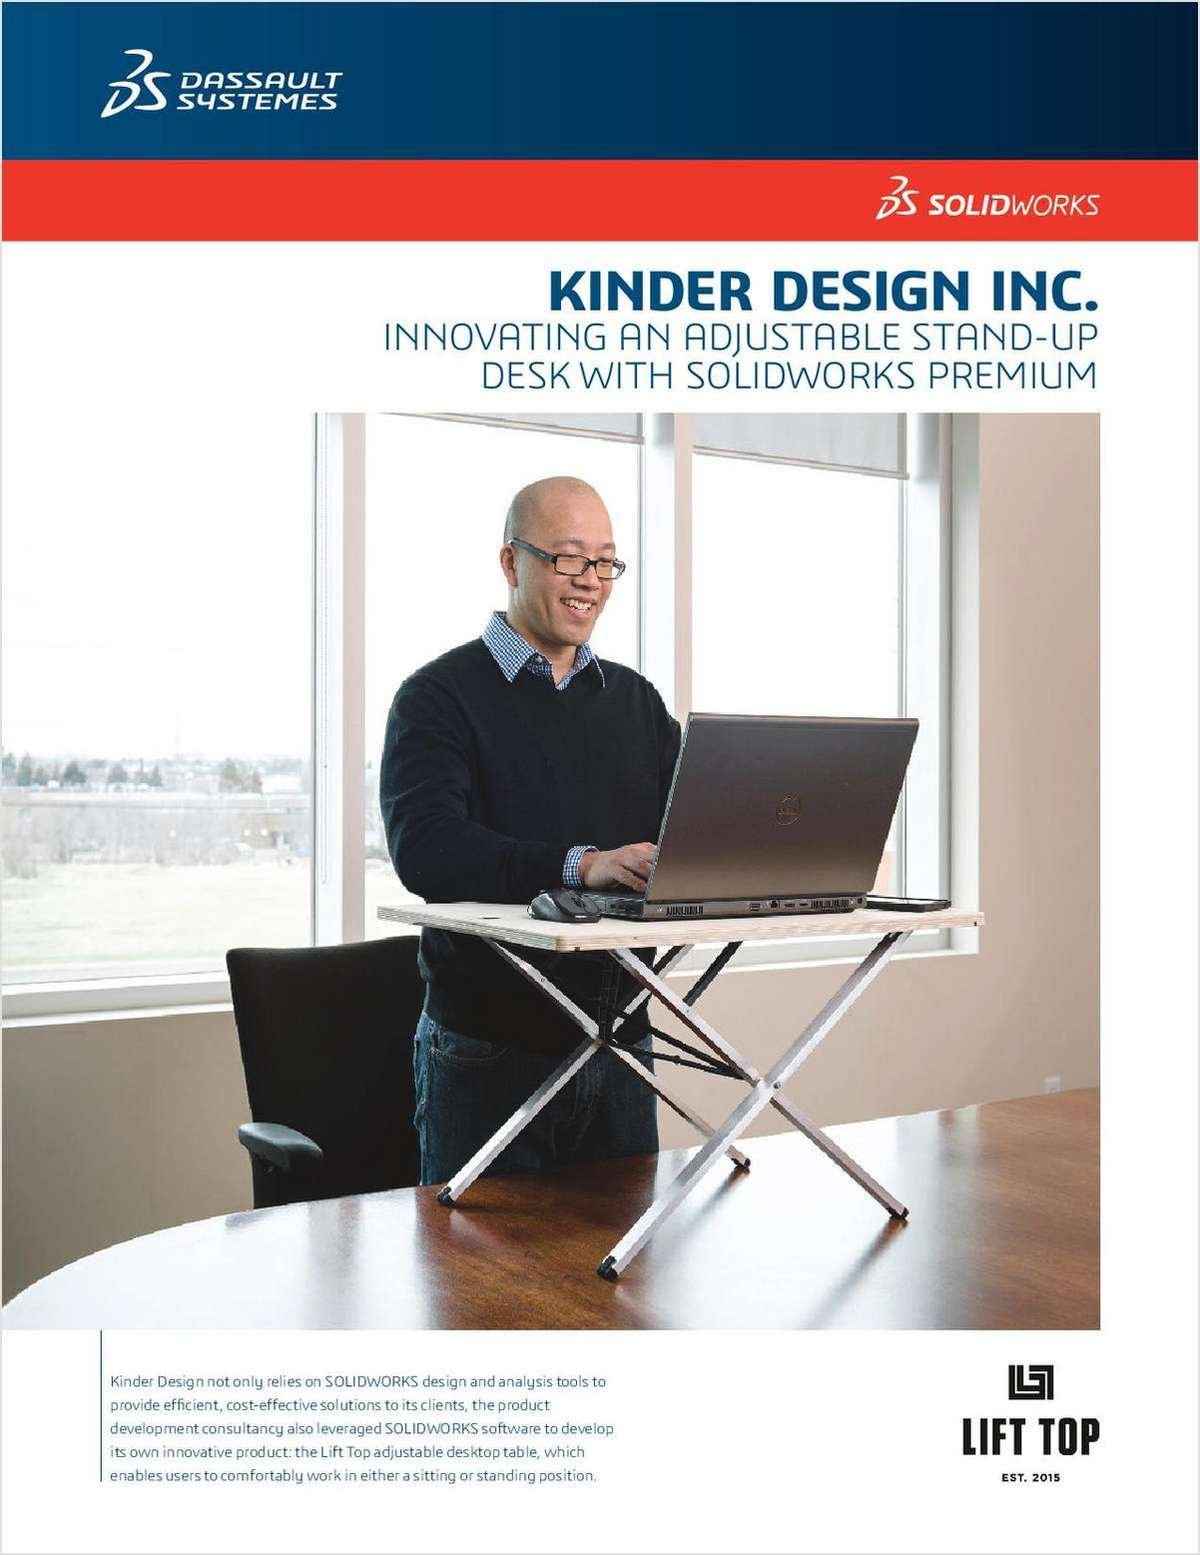 Kinder Design Inc. Uses SOLIDWORKS Premium to Reduce Development Time and Streamline Production